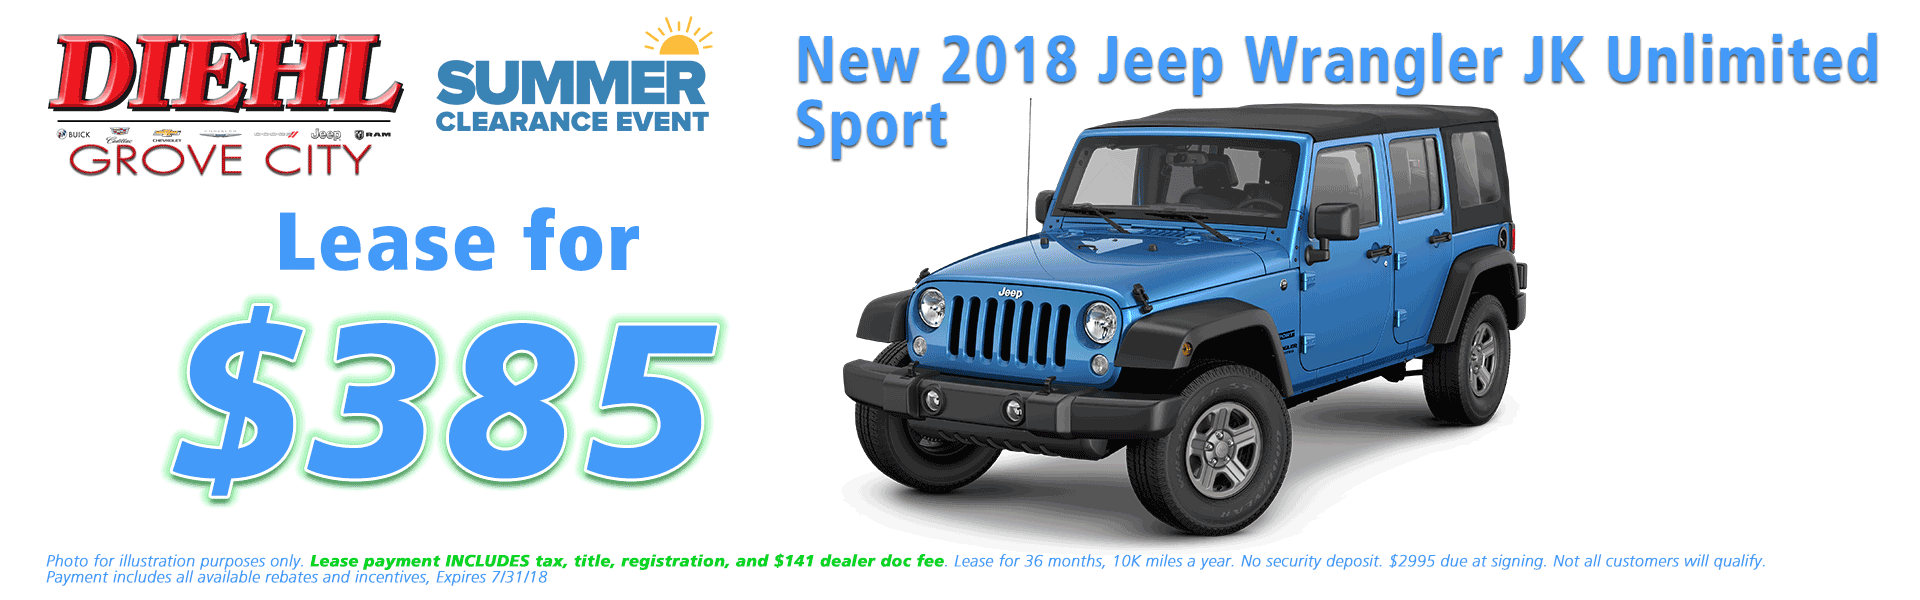 Diehl of Grove City, Grove City, PA 16127 Chrysler Jeep Dodge Ram Chevrolet Buick Cadillac NEW 2018 JEEP WRANGLER UNLIMITED SPORT S 4X4